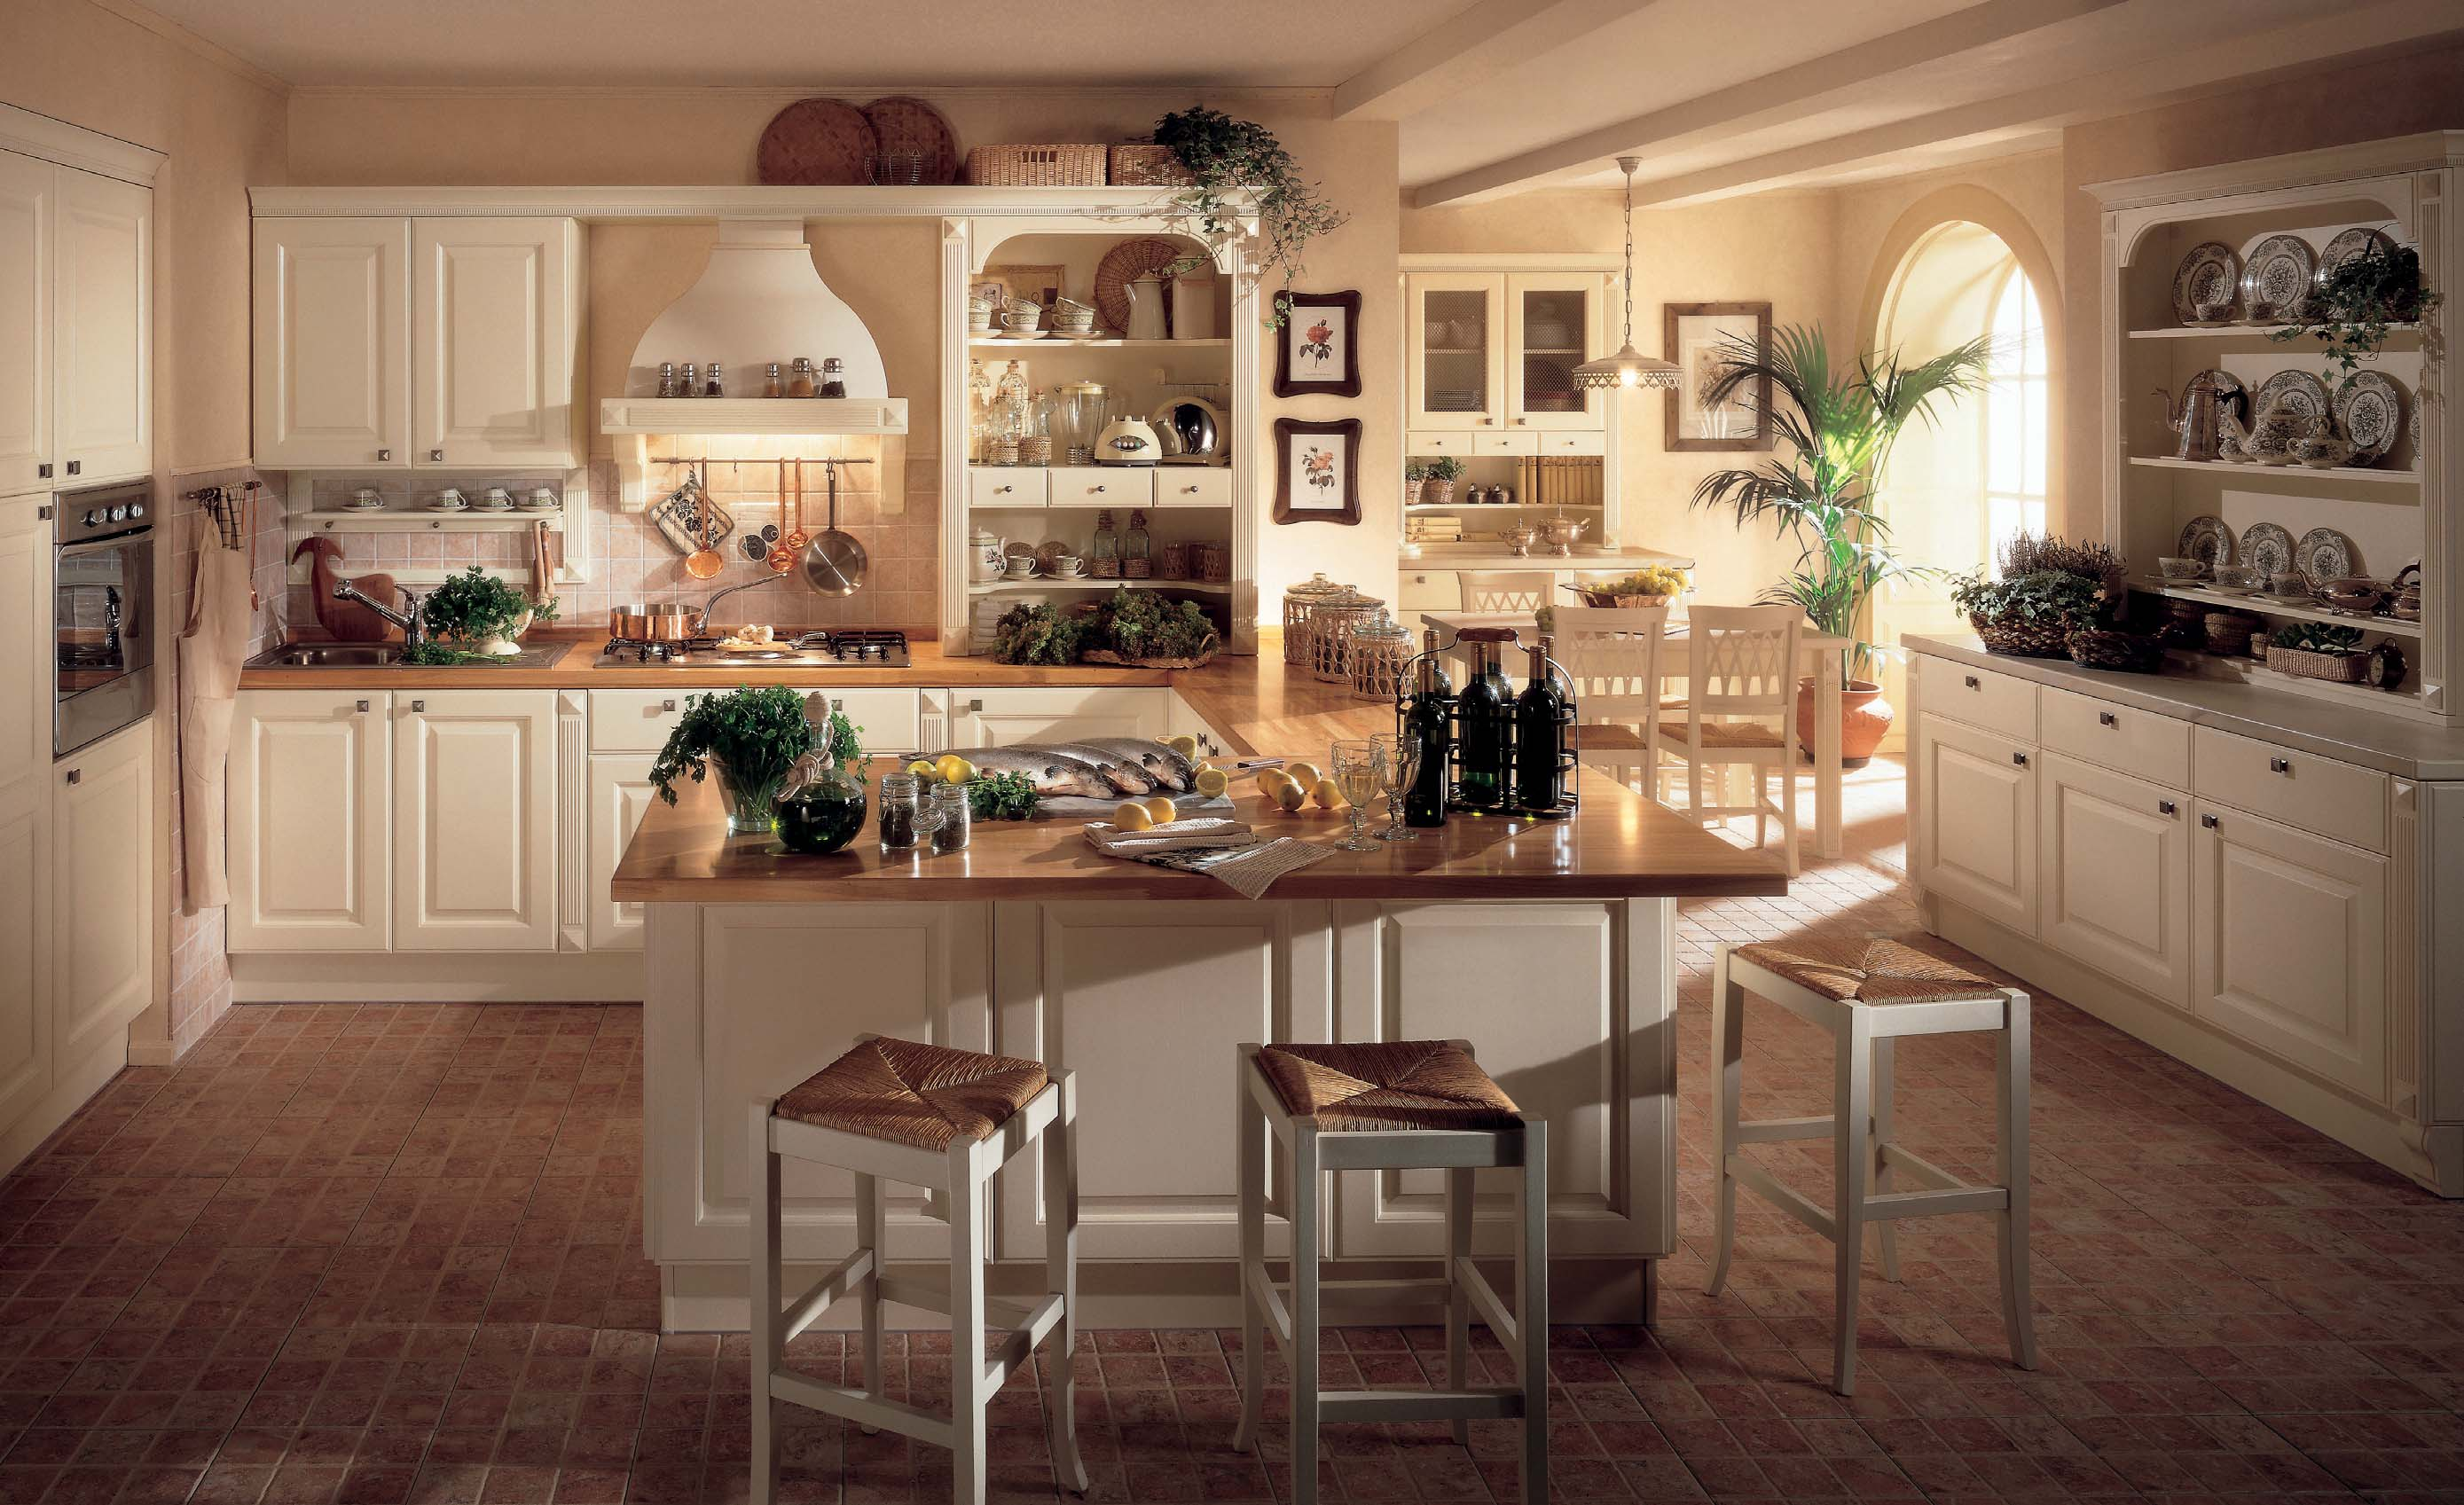 Athena classic kitchen interior inspiration - Interior designs of houses and kitchens ...